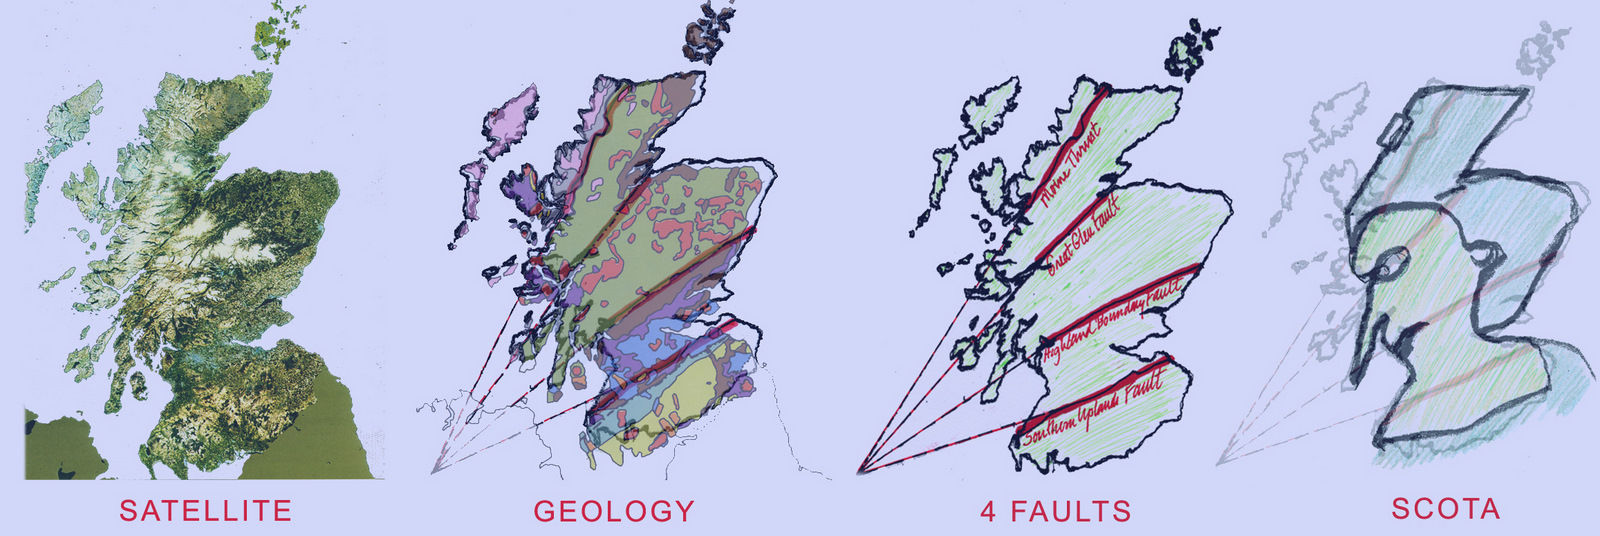 The map of Scotland, in red ballast, is divided by the four main faults cutting Scotland into different geological epochs.